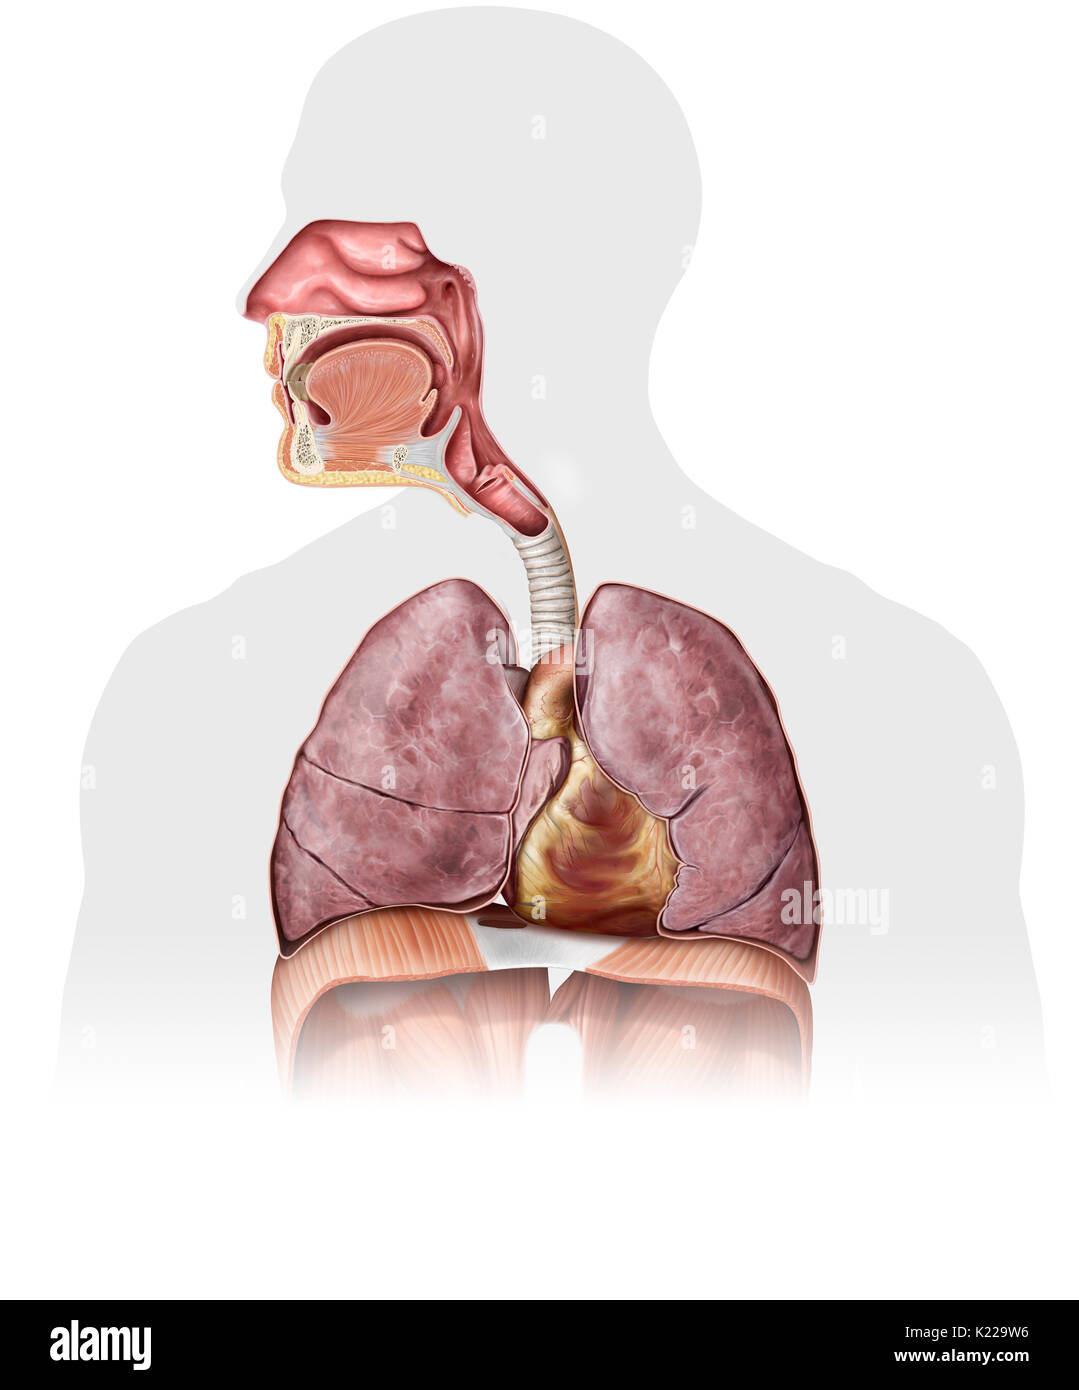 This image shows the nasal cavity, the epiglottis, the mouth, the pharynx, the larynx, the trachea, the heart, the lungs, the trachea and the diaphragm. - Stock Image